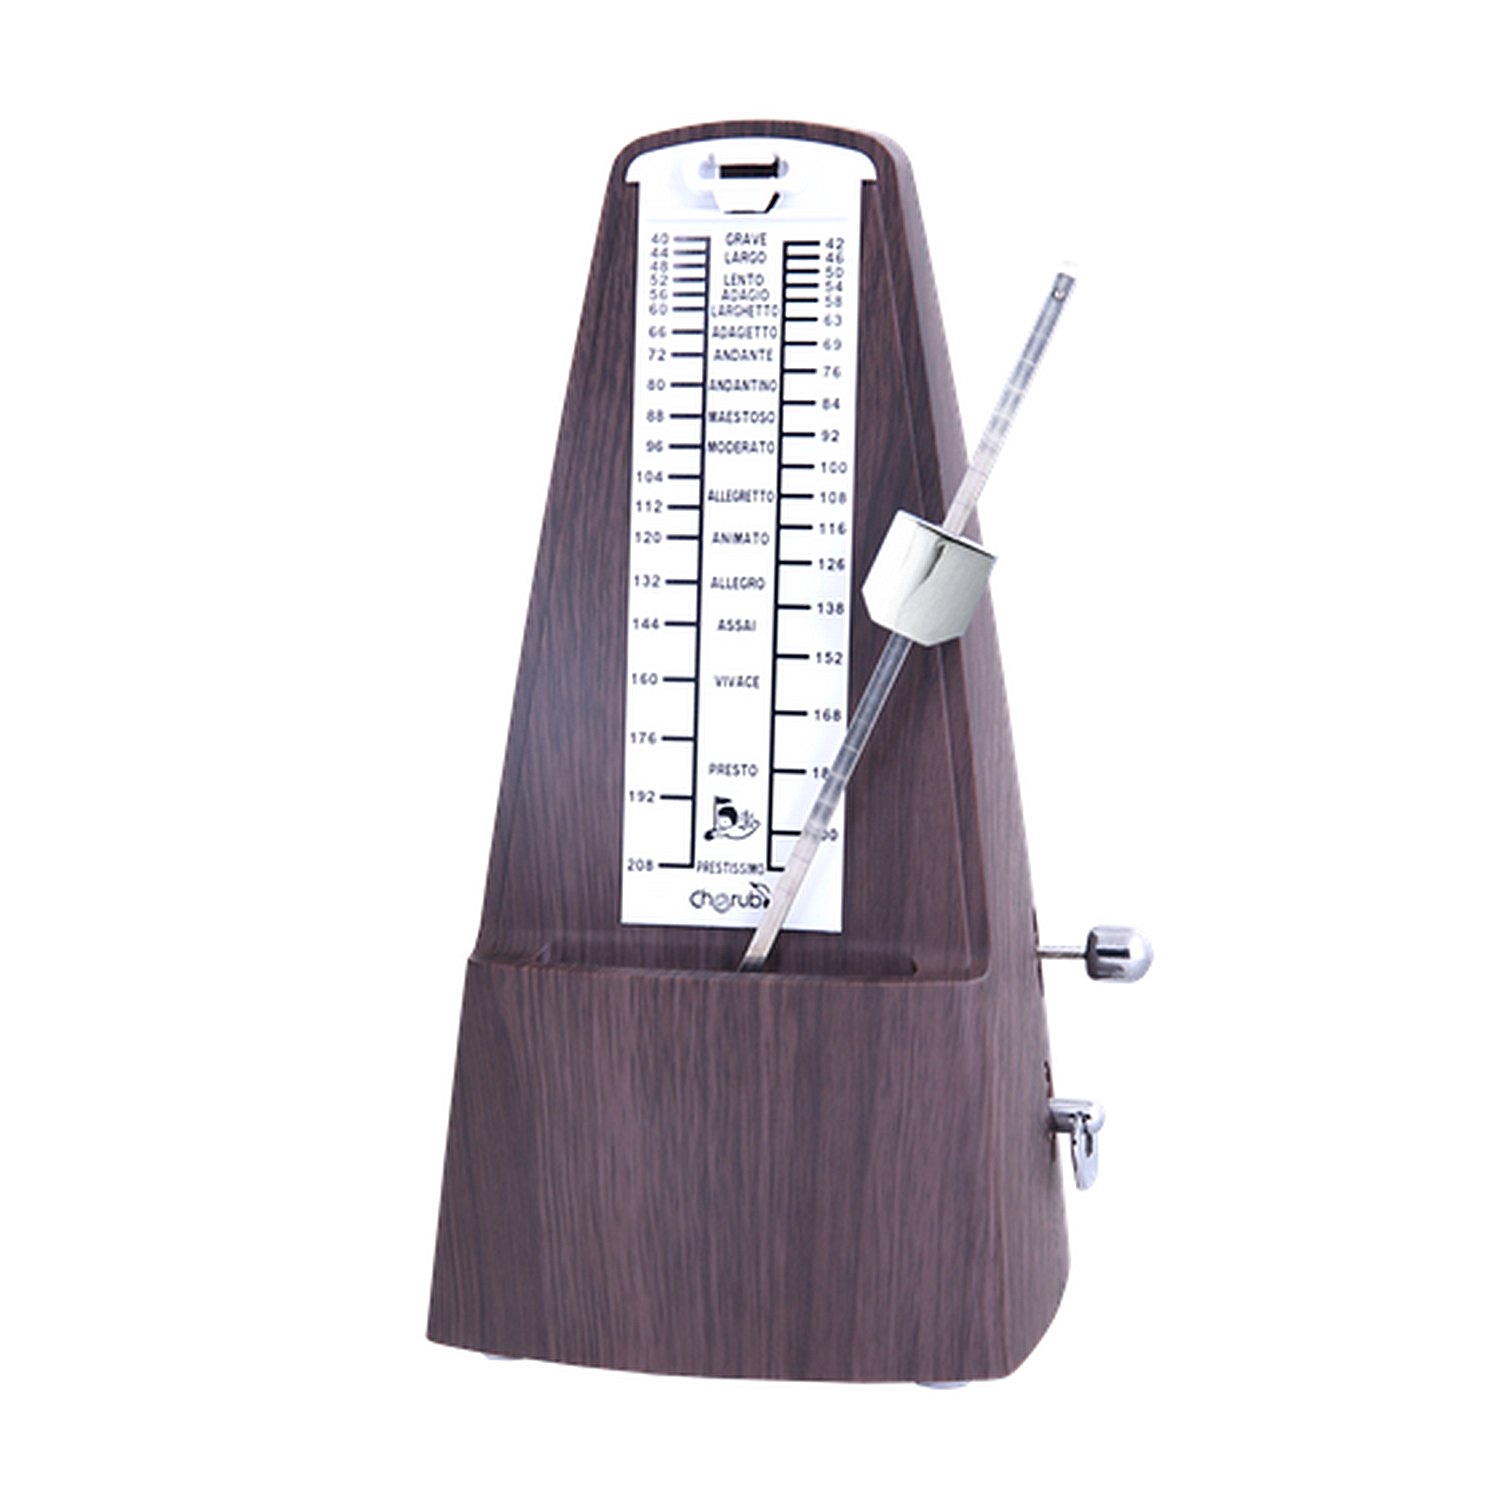 Cherub Walnut Wood Grain Mechanical Metronome Downbeats  Traditional tower shape Spring Mechanism 40 to 208 bpm Variable Tempo cherub wsm 330 rose wood cherry wood mechanical metronome musical instrument tempo beat rhythm